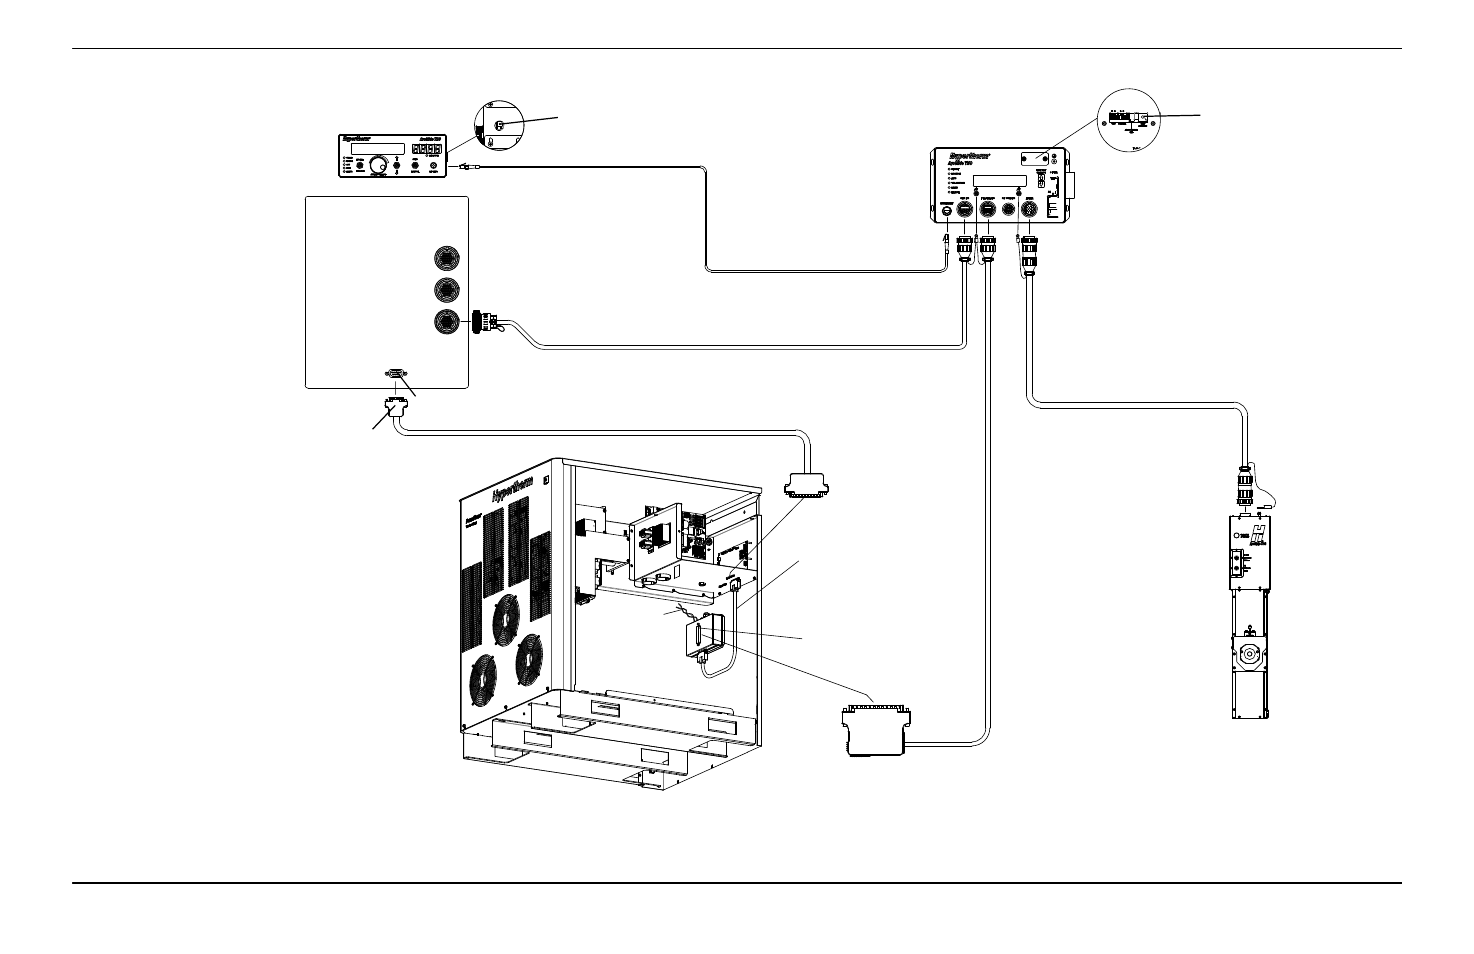 Cnc Thc Wiring Diagram Trusted Diagrams Bldc Machine Schematic Hypertherm Arcglide User Manual Page 67 288 Also For Edge